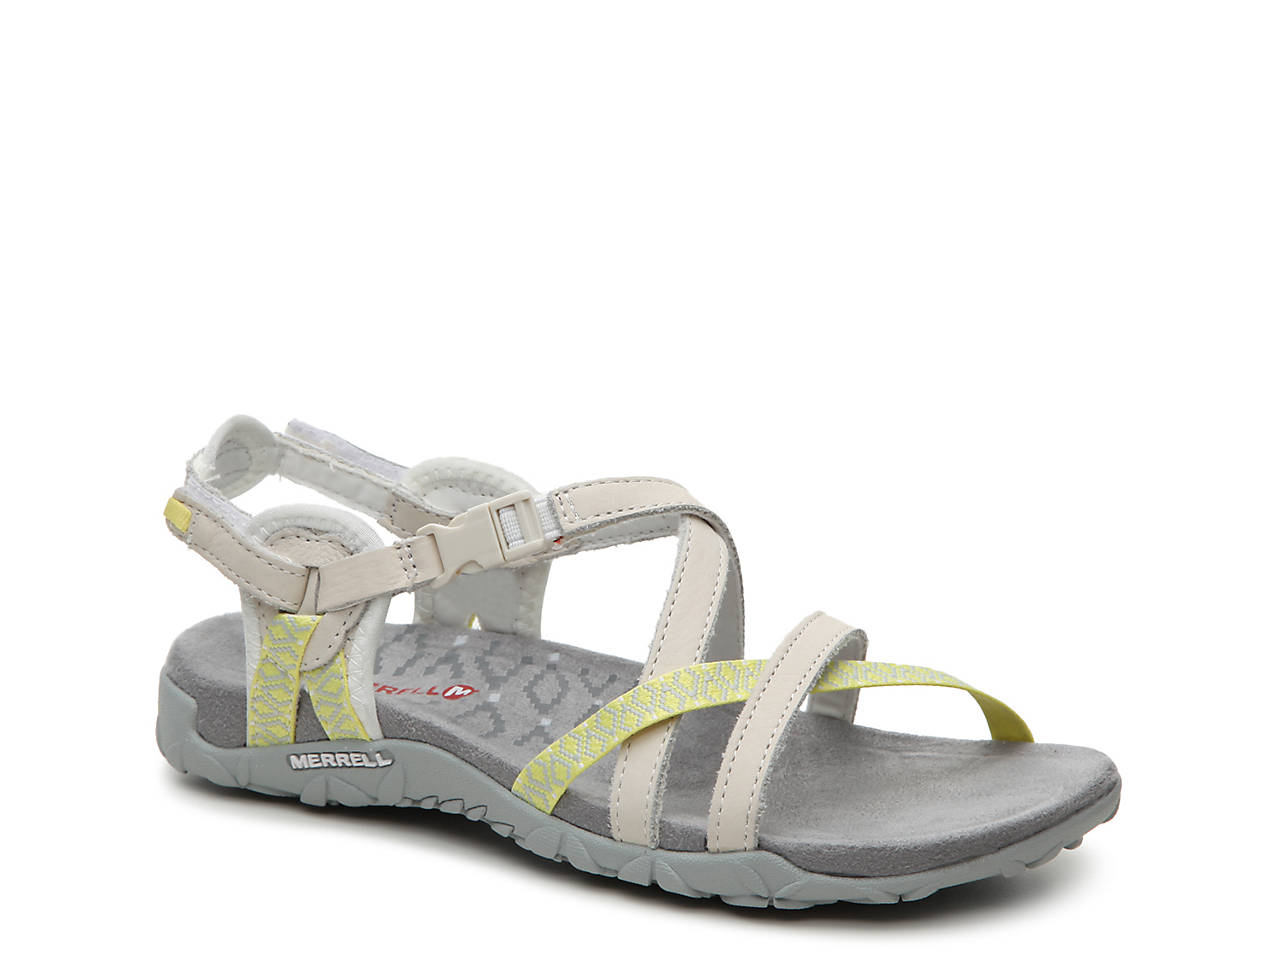 4c6127b5c782 Merrell Terran Lattice II Sport Sandal Women s Shoes